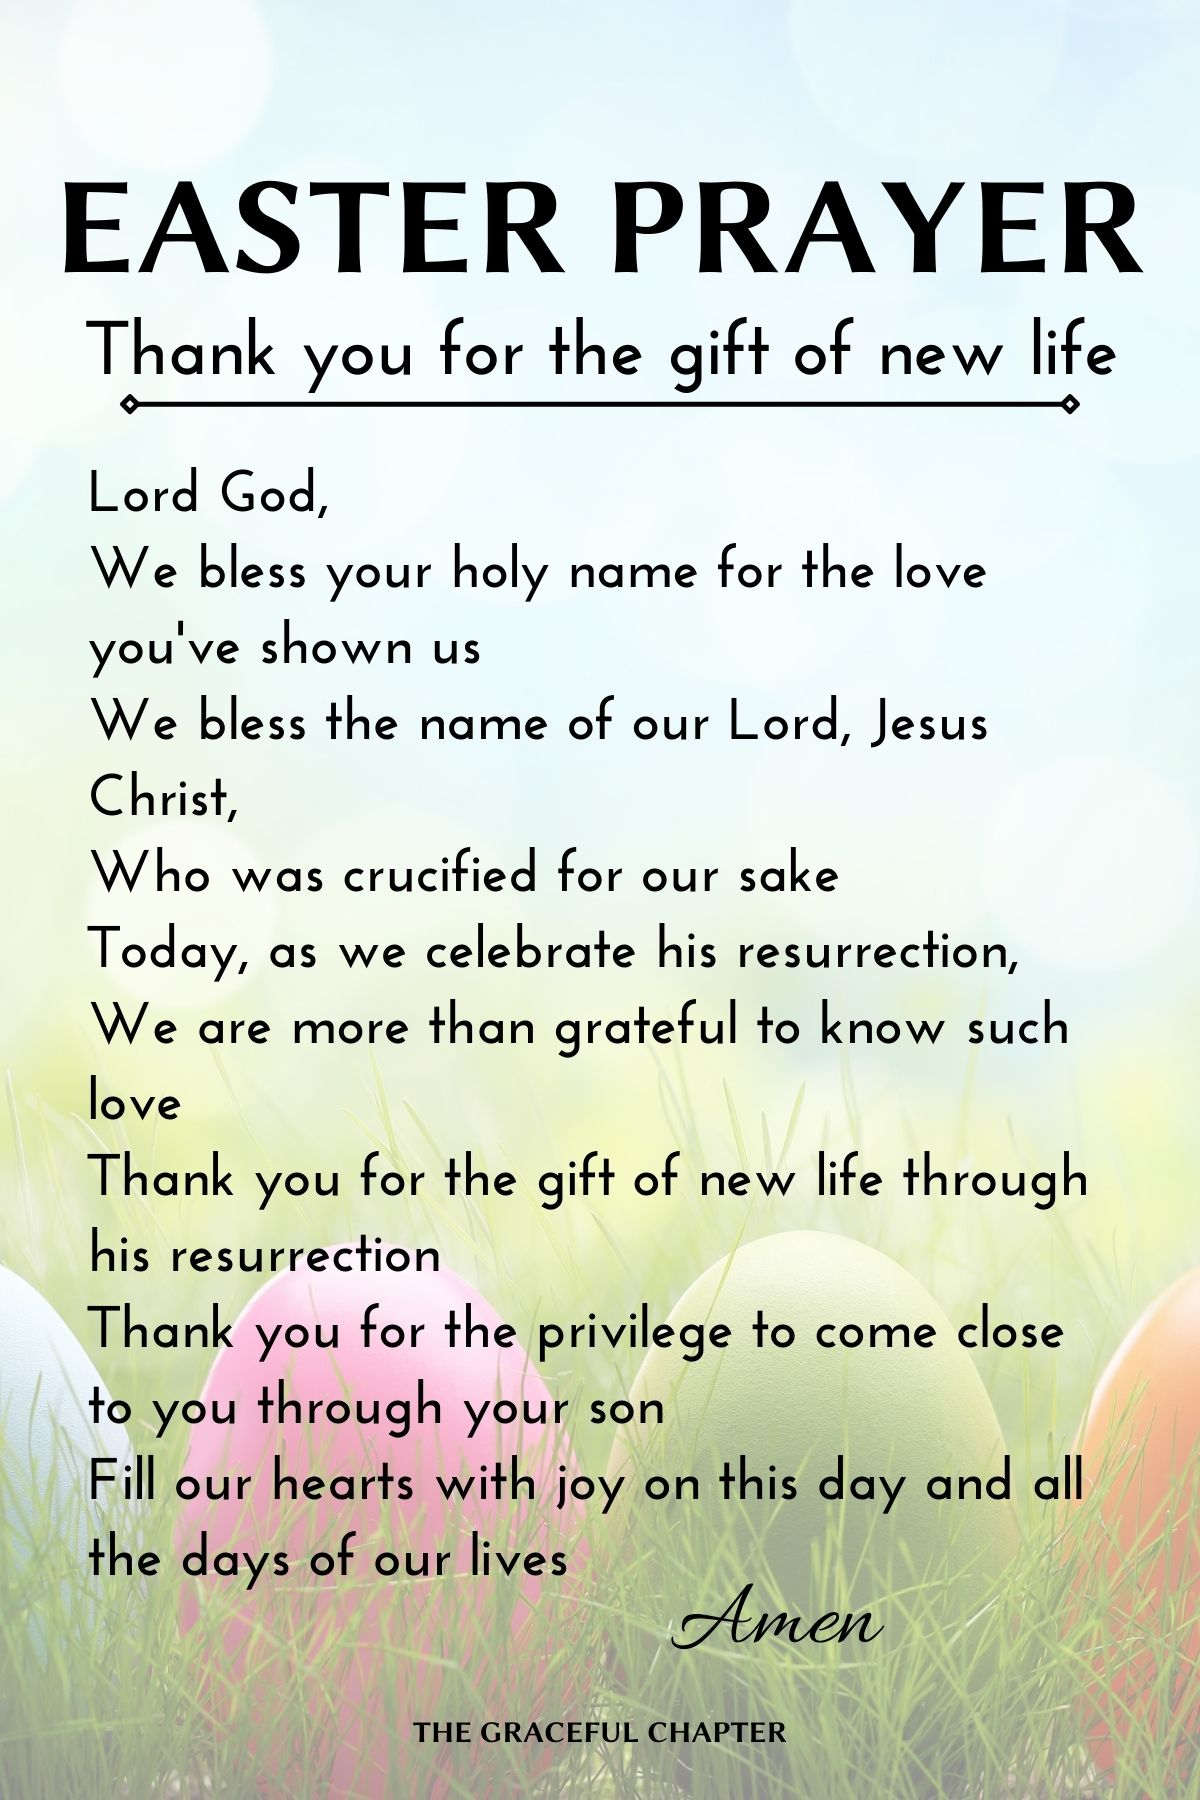 easter prayer - thank you for the gift of new life